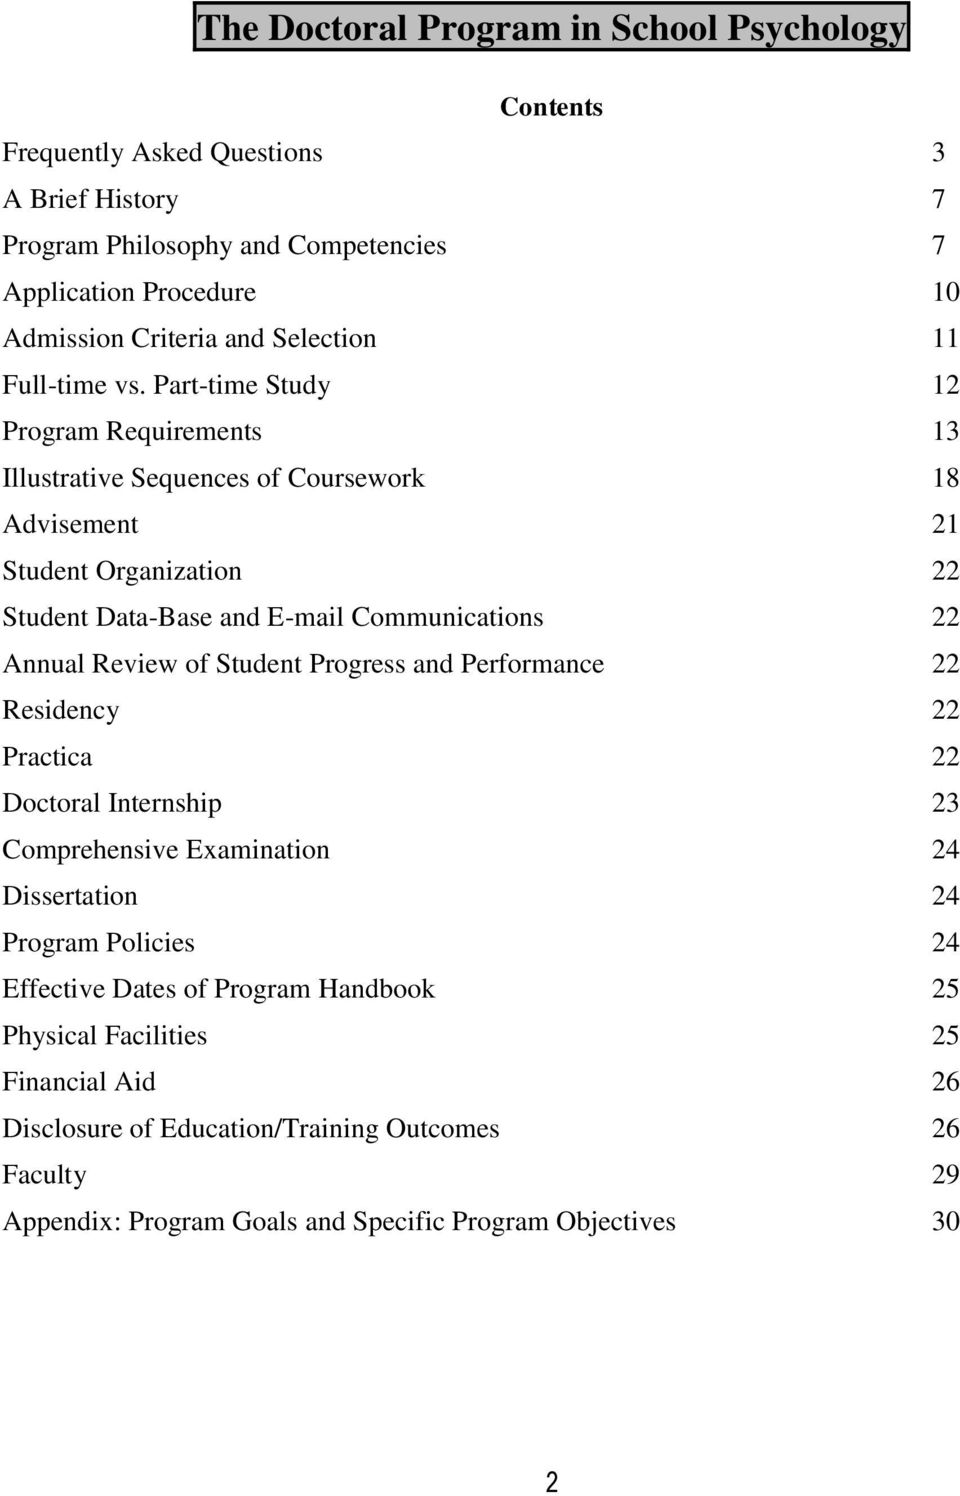 Part-time Study 12 Program Requirements 13 Illustrative Sequences of Coursework 18 Advisement 21 Student Organization 22 Student Data-Base and E-mail Communications 22 Annual Review of